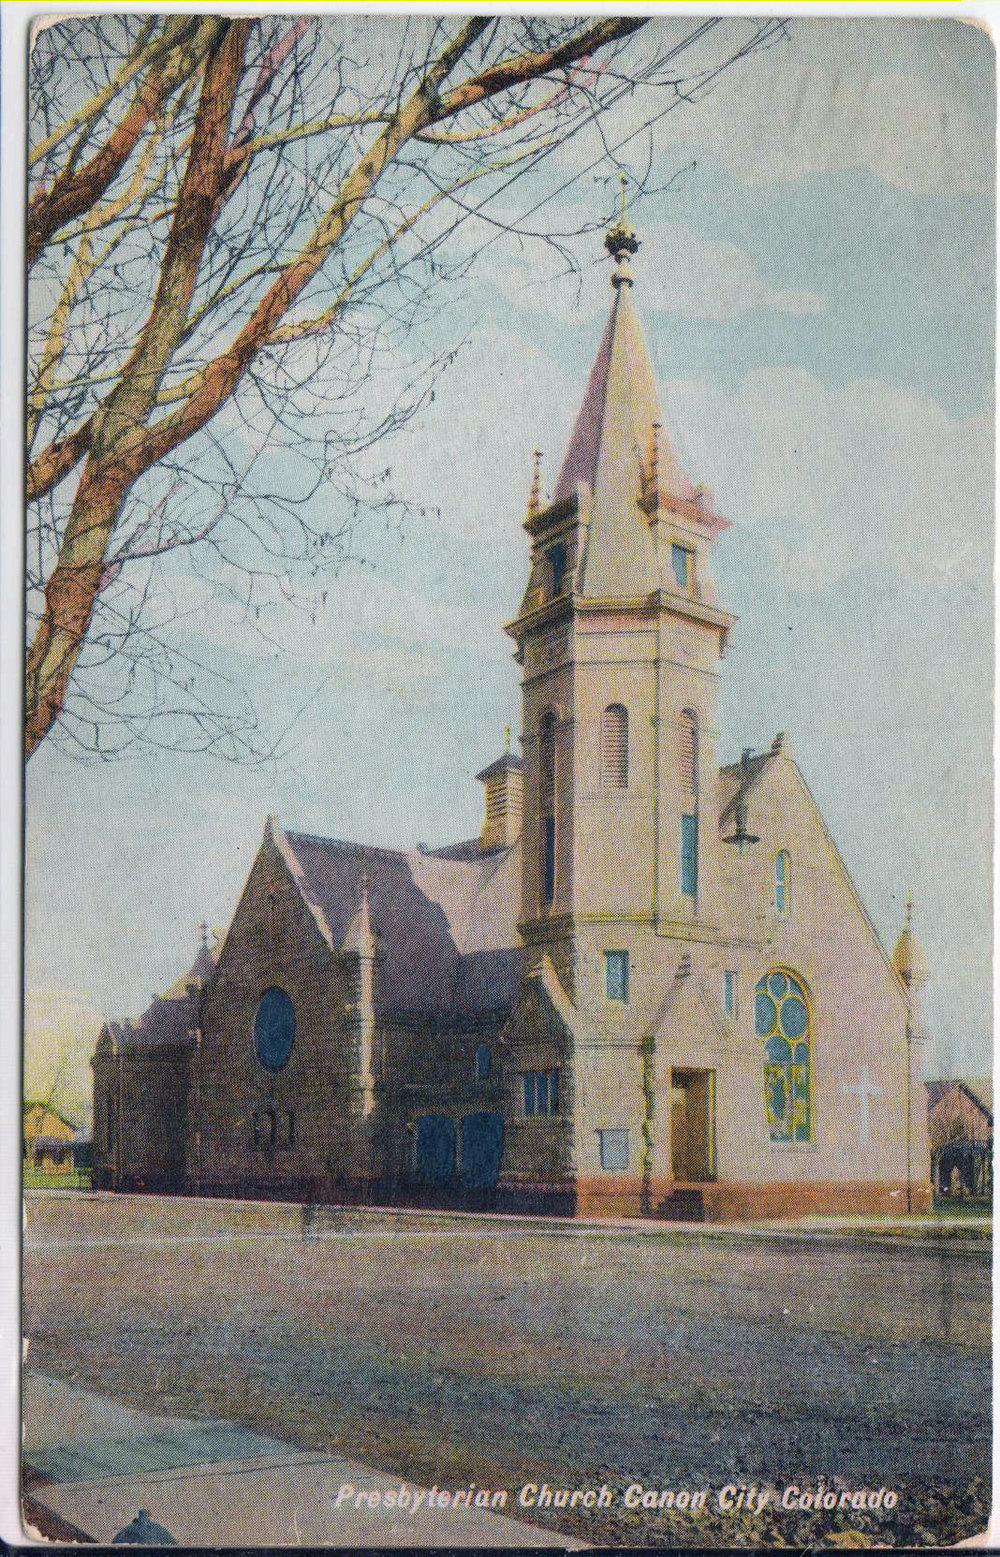 The United Presbyterian Church - This is a copy of a postcard from the early 1900's